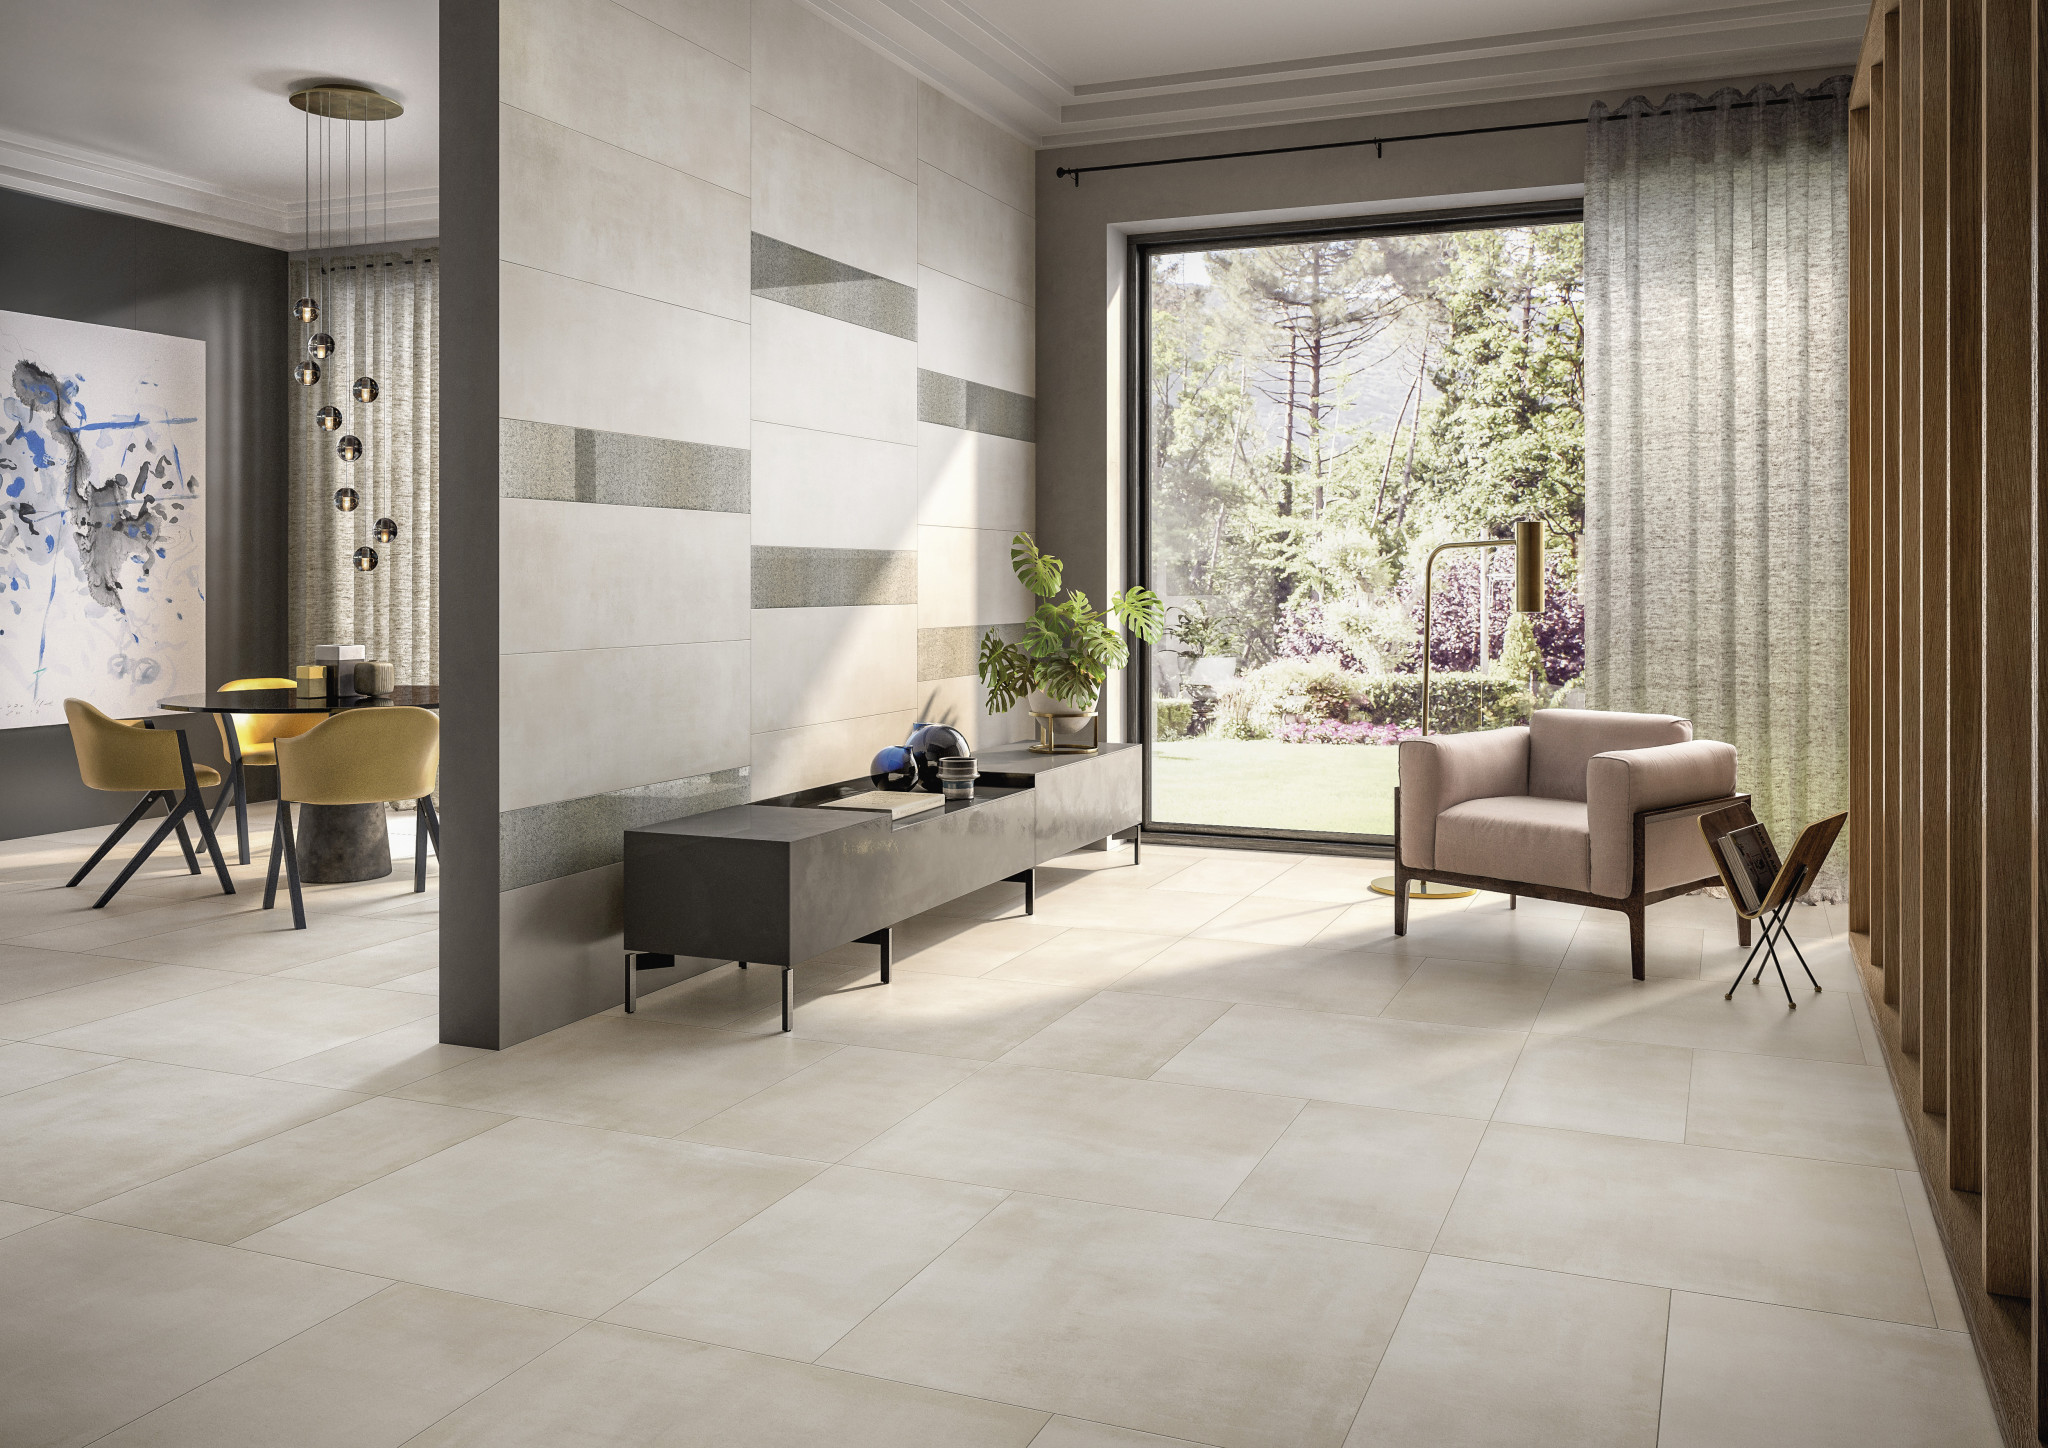 Villeroy Und Boch Fliesen  Villeroy & Boch Tiles New Products 2017 Collection